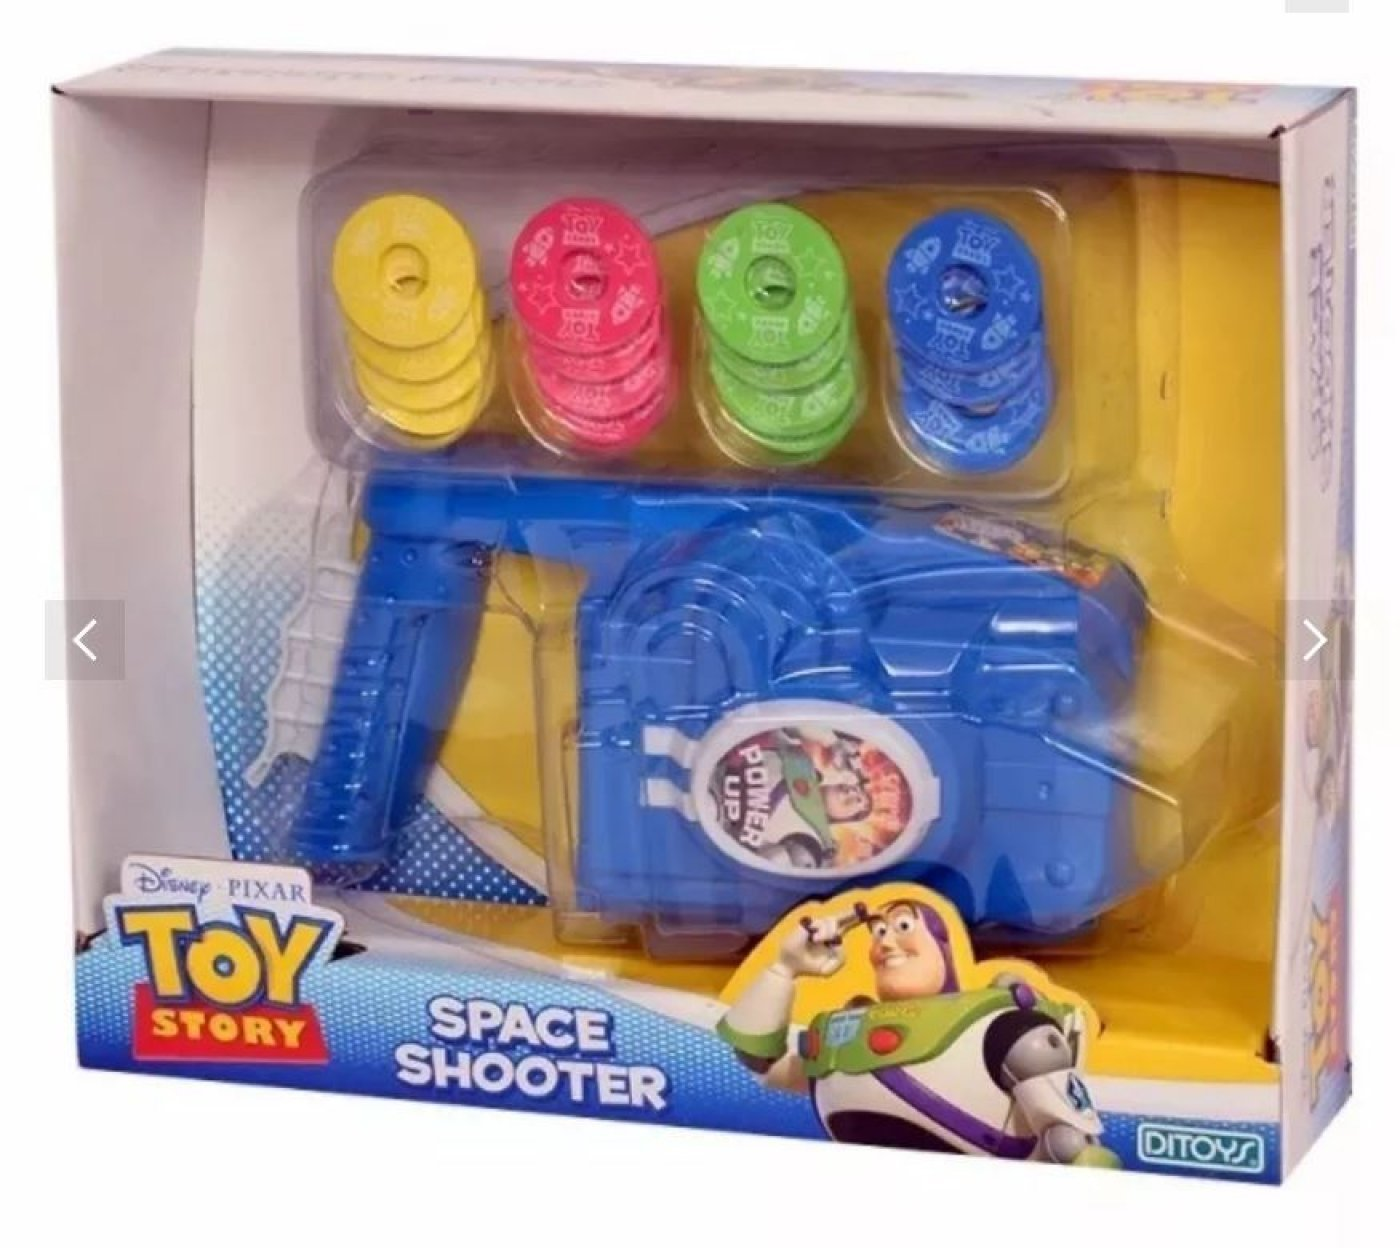 Toy Story 4 Space Shooter